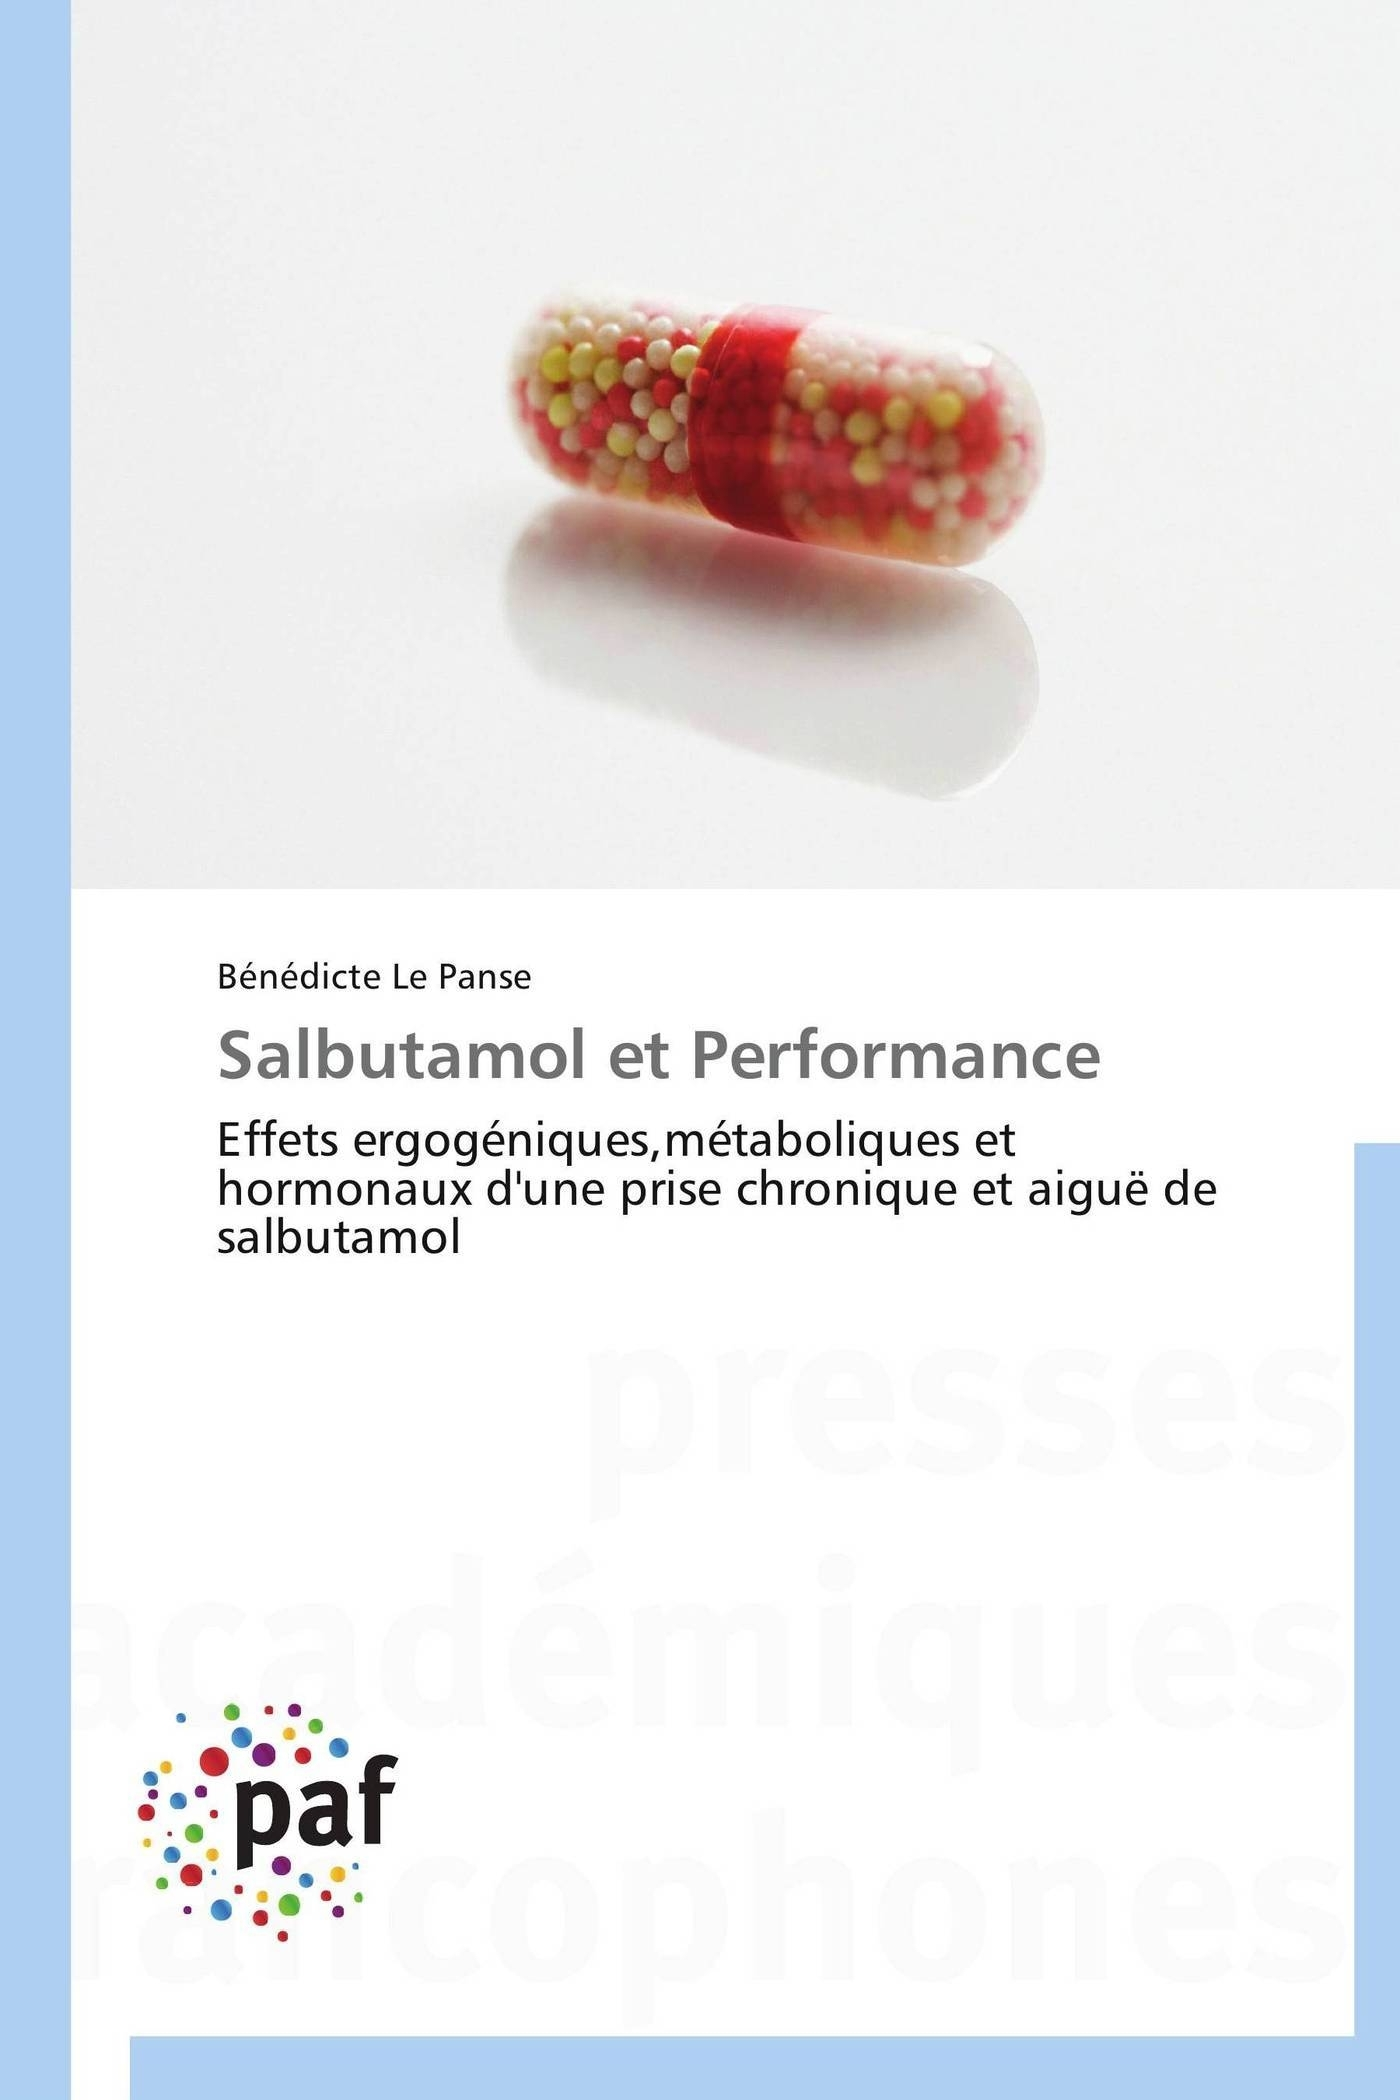 SALBUTAMOL ET PERFORMANCE